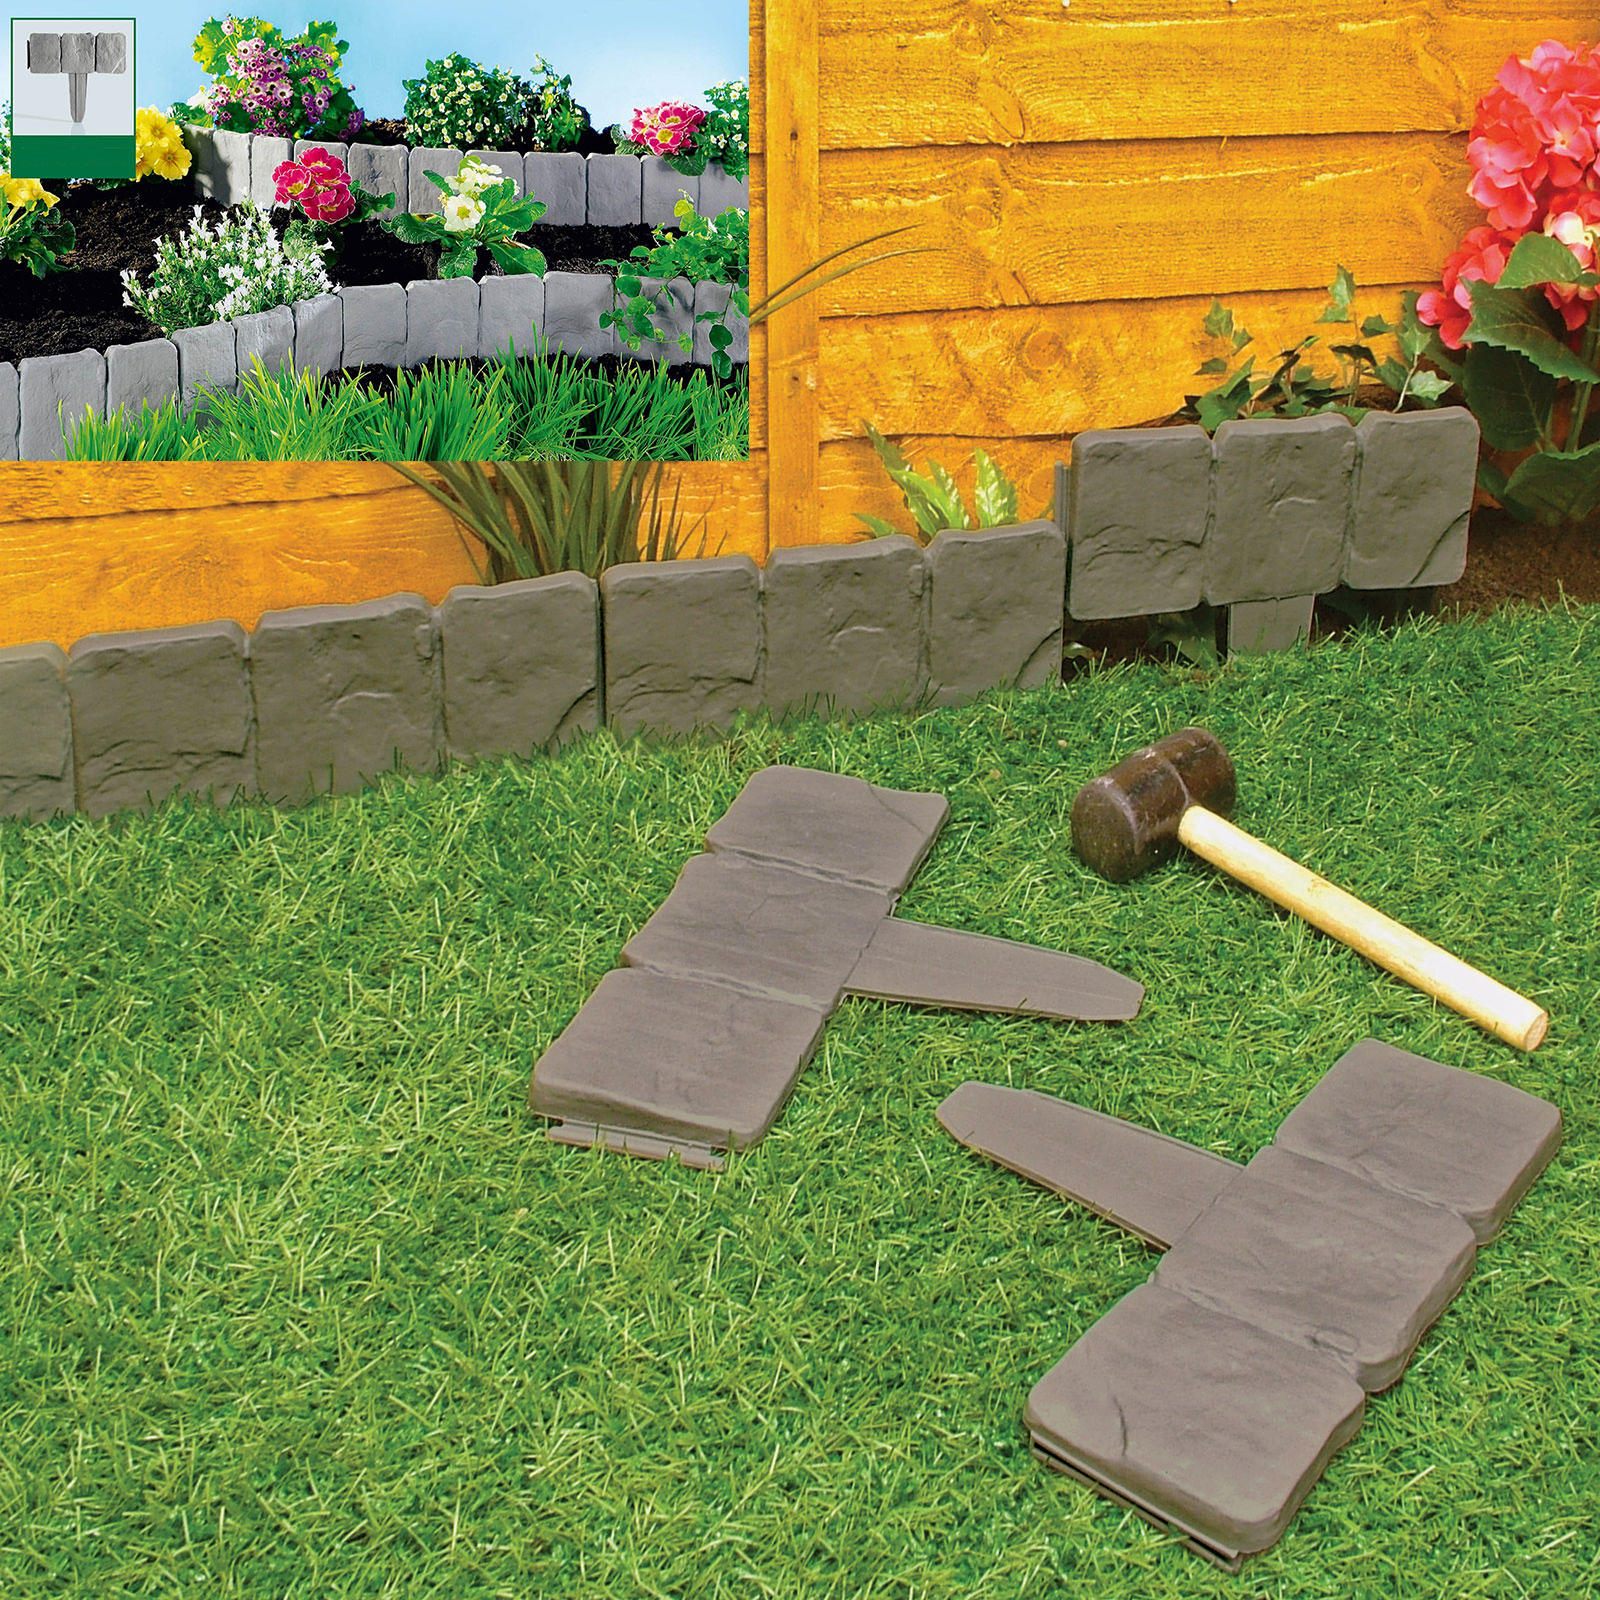 Grass border edging images galleries for Garden trim